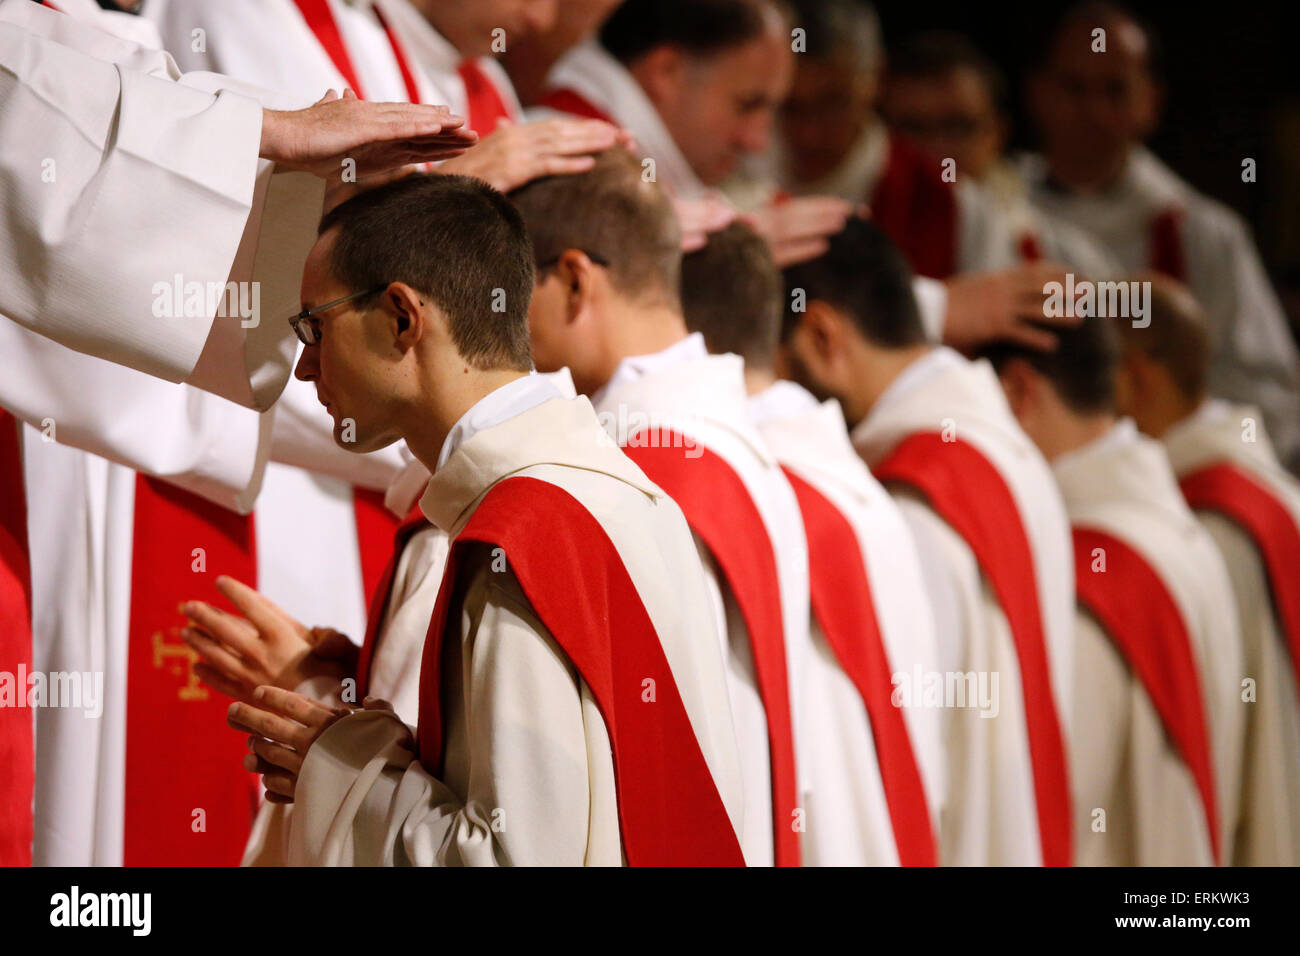 Priest ordinations in Notre-Dame de Paris Cathedral, Paris, France, Europe - Stock Image